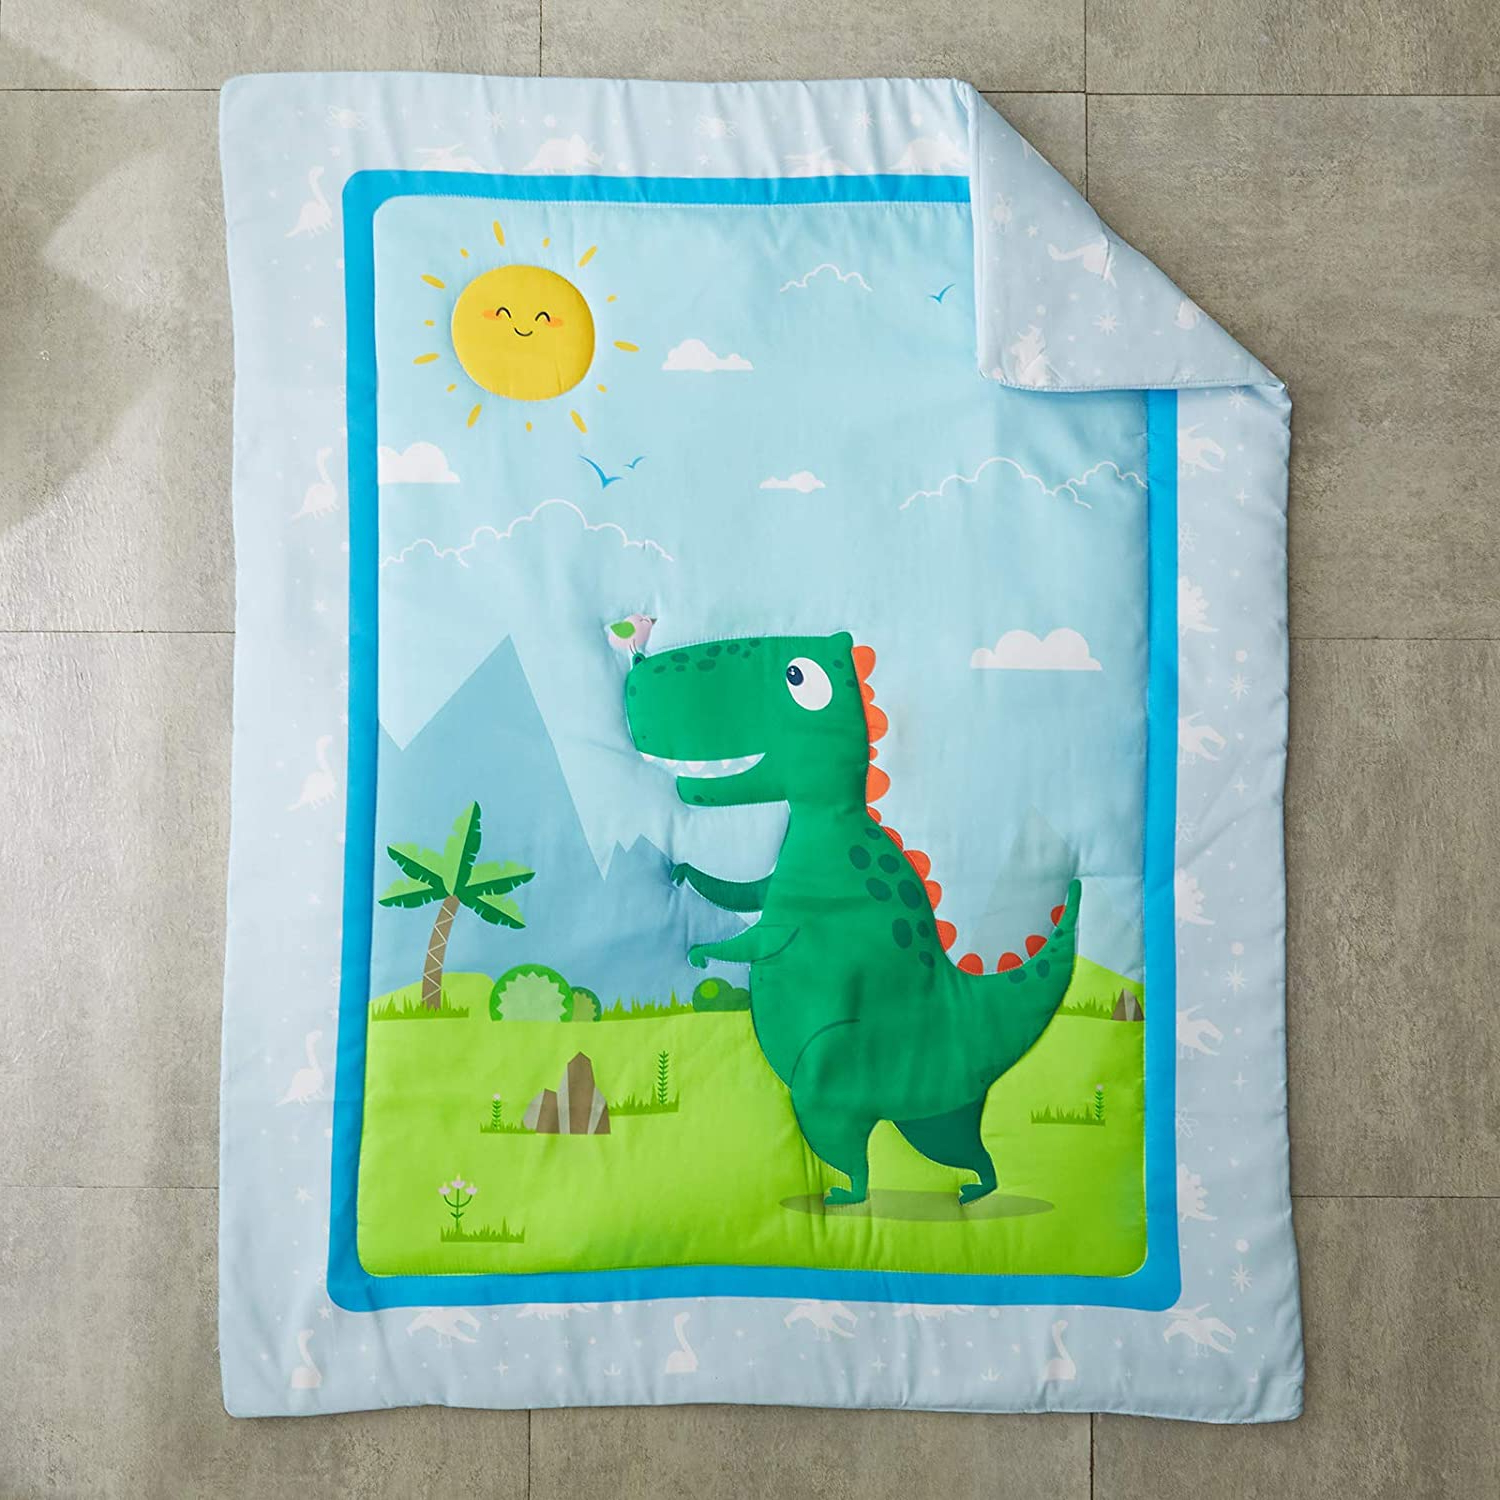 2019 3 Piece Crib Bedding Set Green Dinosaur Baby Boys Or Girls Dino Nursery Cute Style With Blue Sky And Orange Sun With Blended Fabric Mod Dinosaur 3 Piece Wall Hangings Set (View 8 of 20)